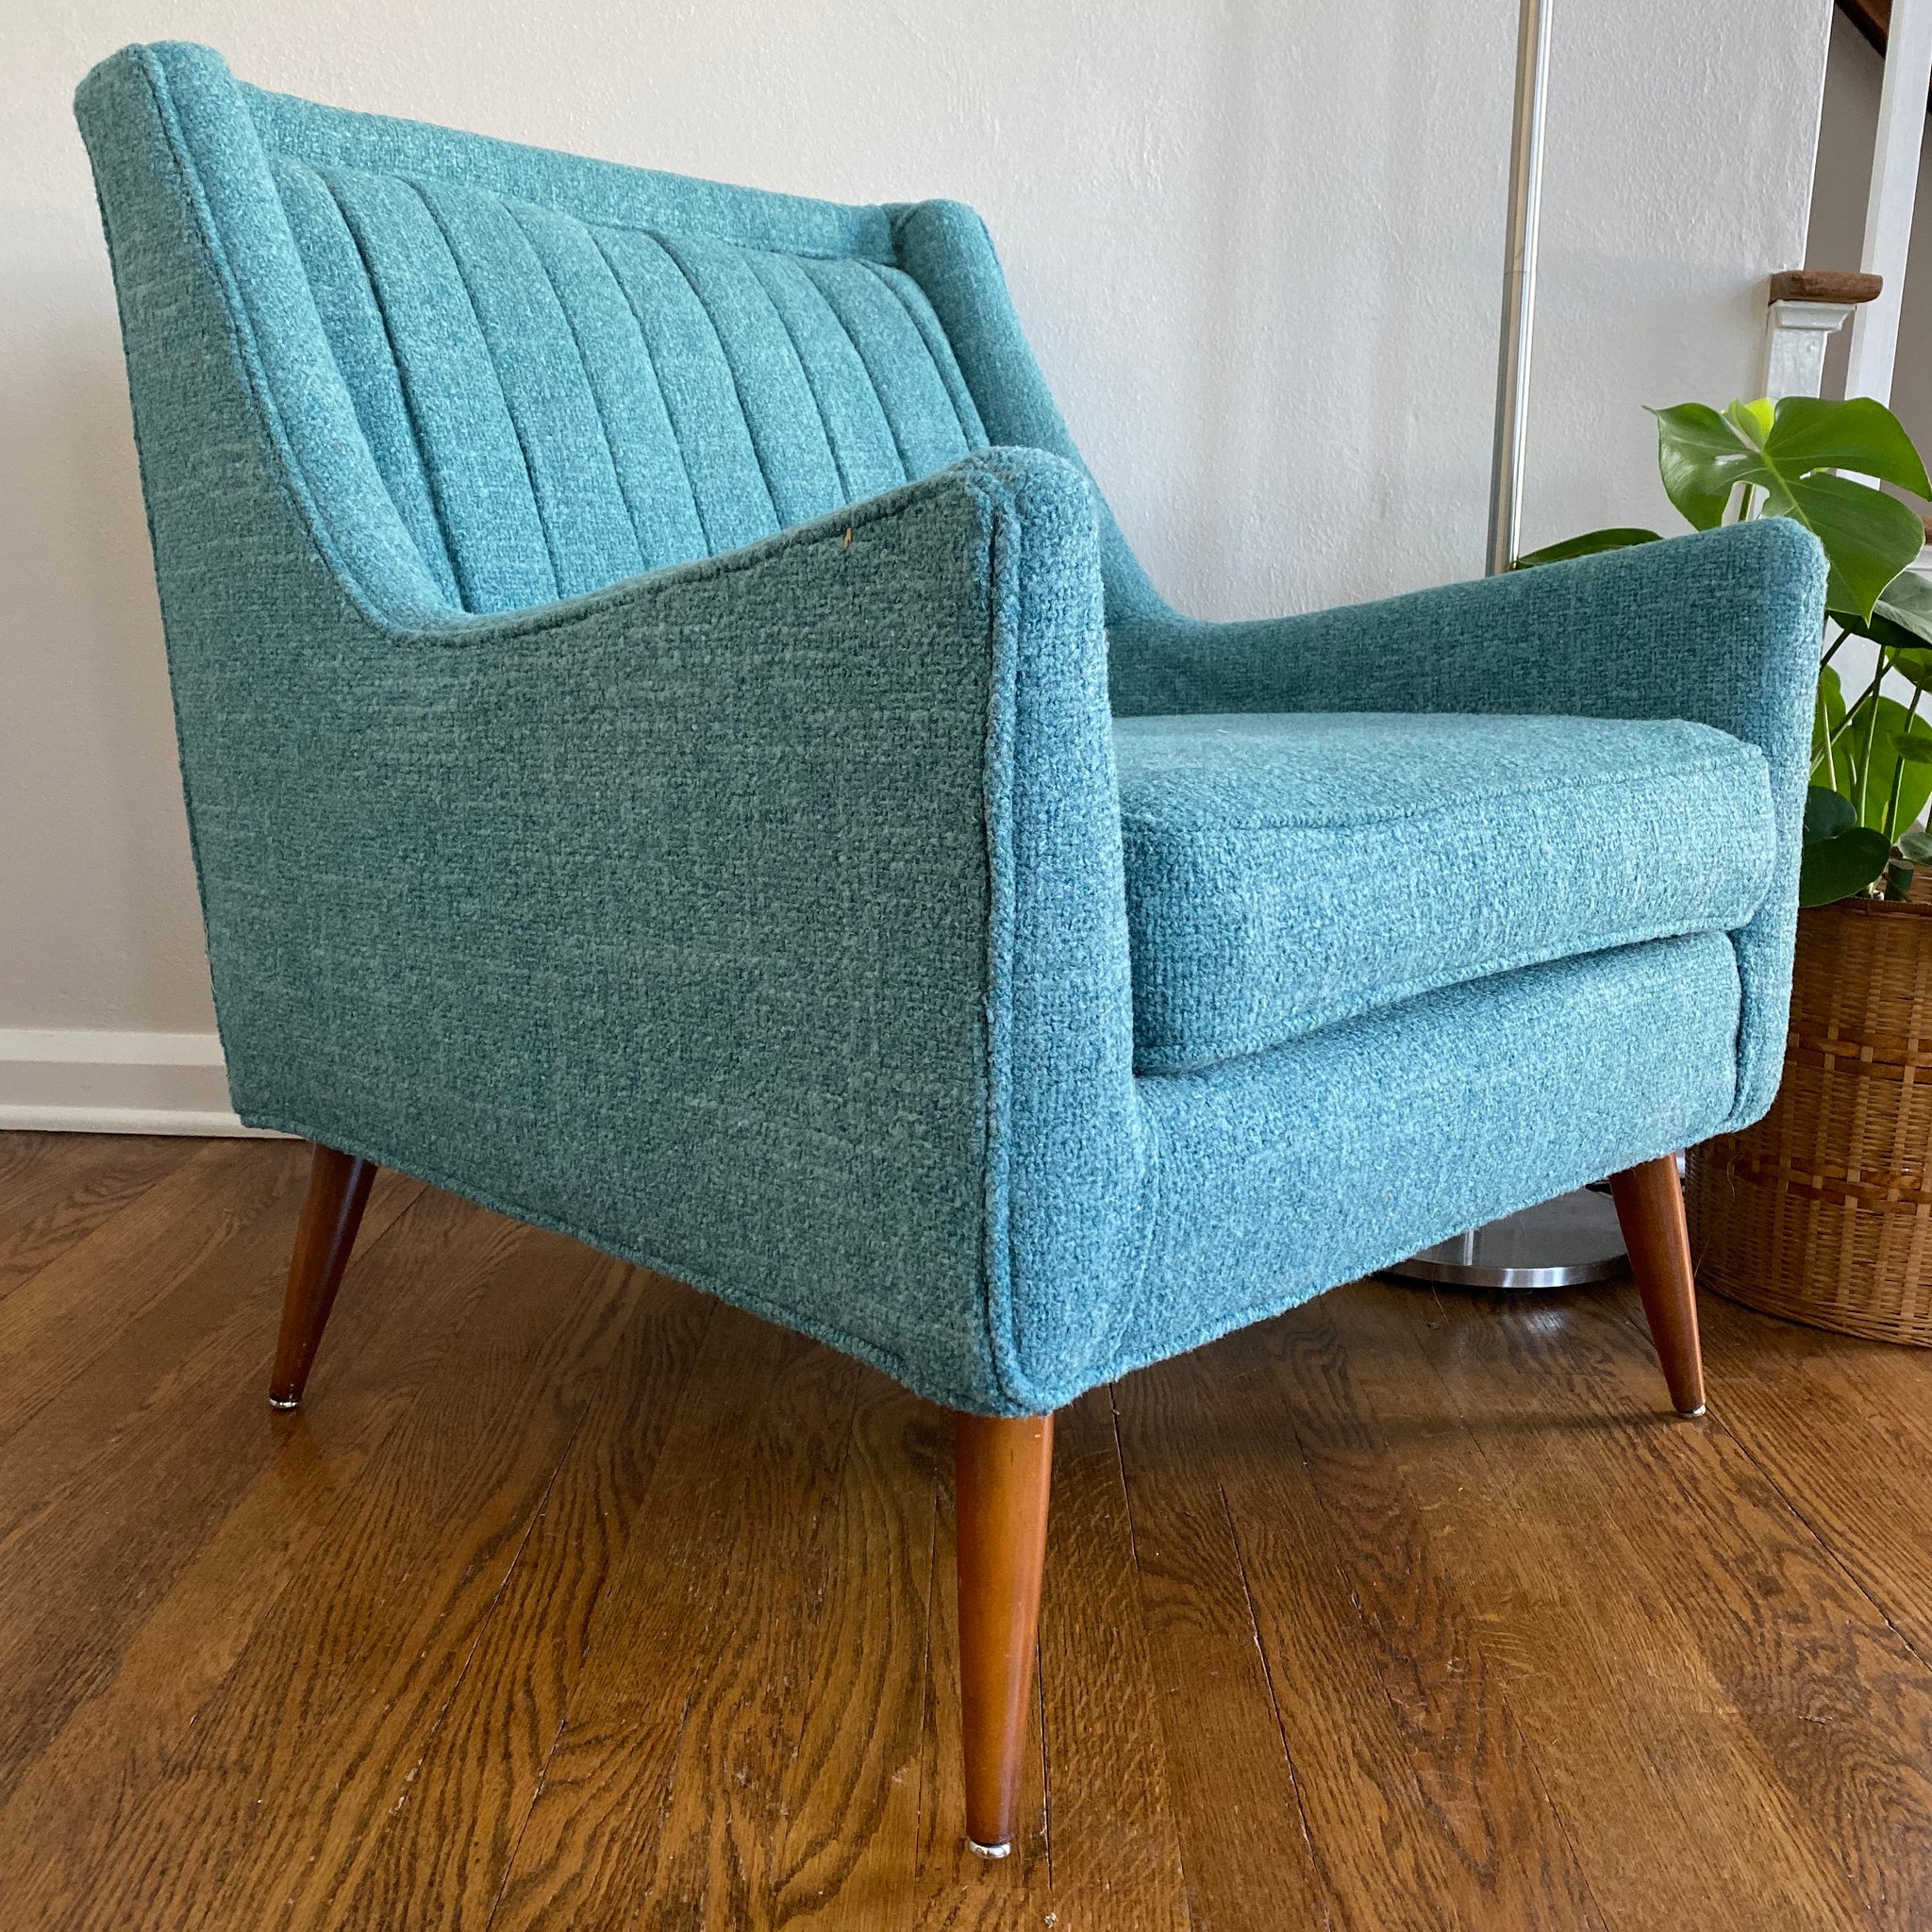 Marvelous Vintage Midcentury Modern Lounge Armchair Newly Upholstered Alphanode Cool Chair Designs And Ideas Alphanodeonline